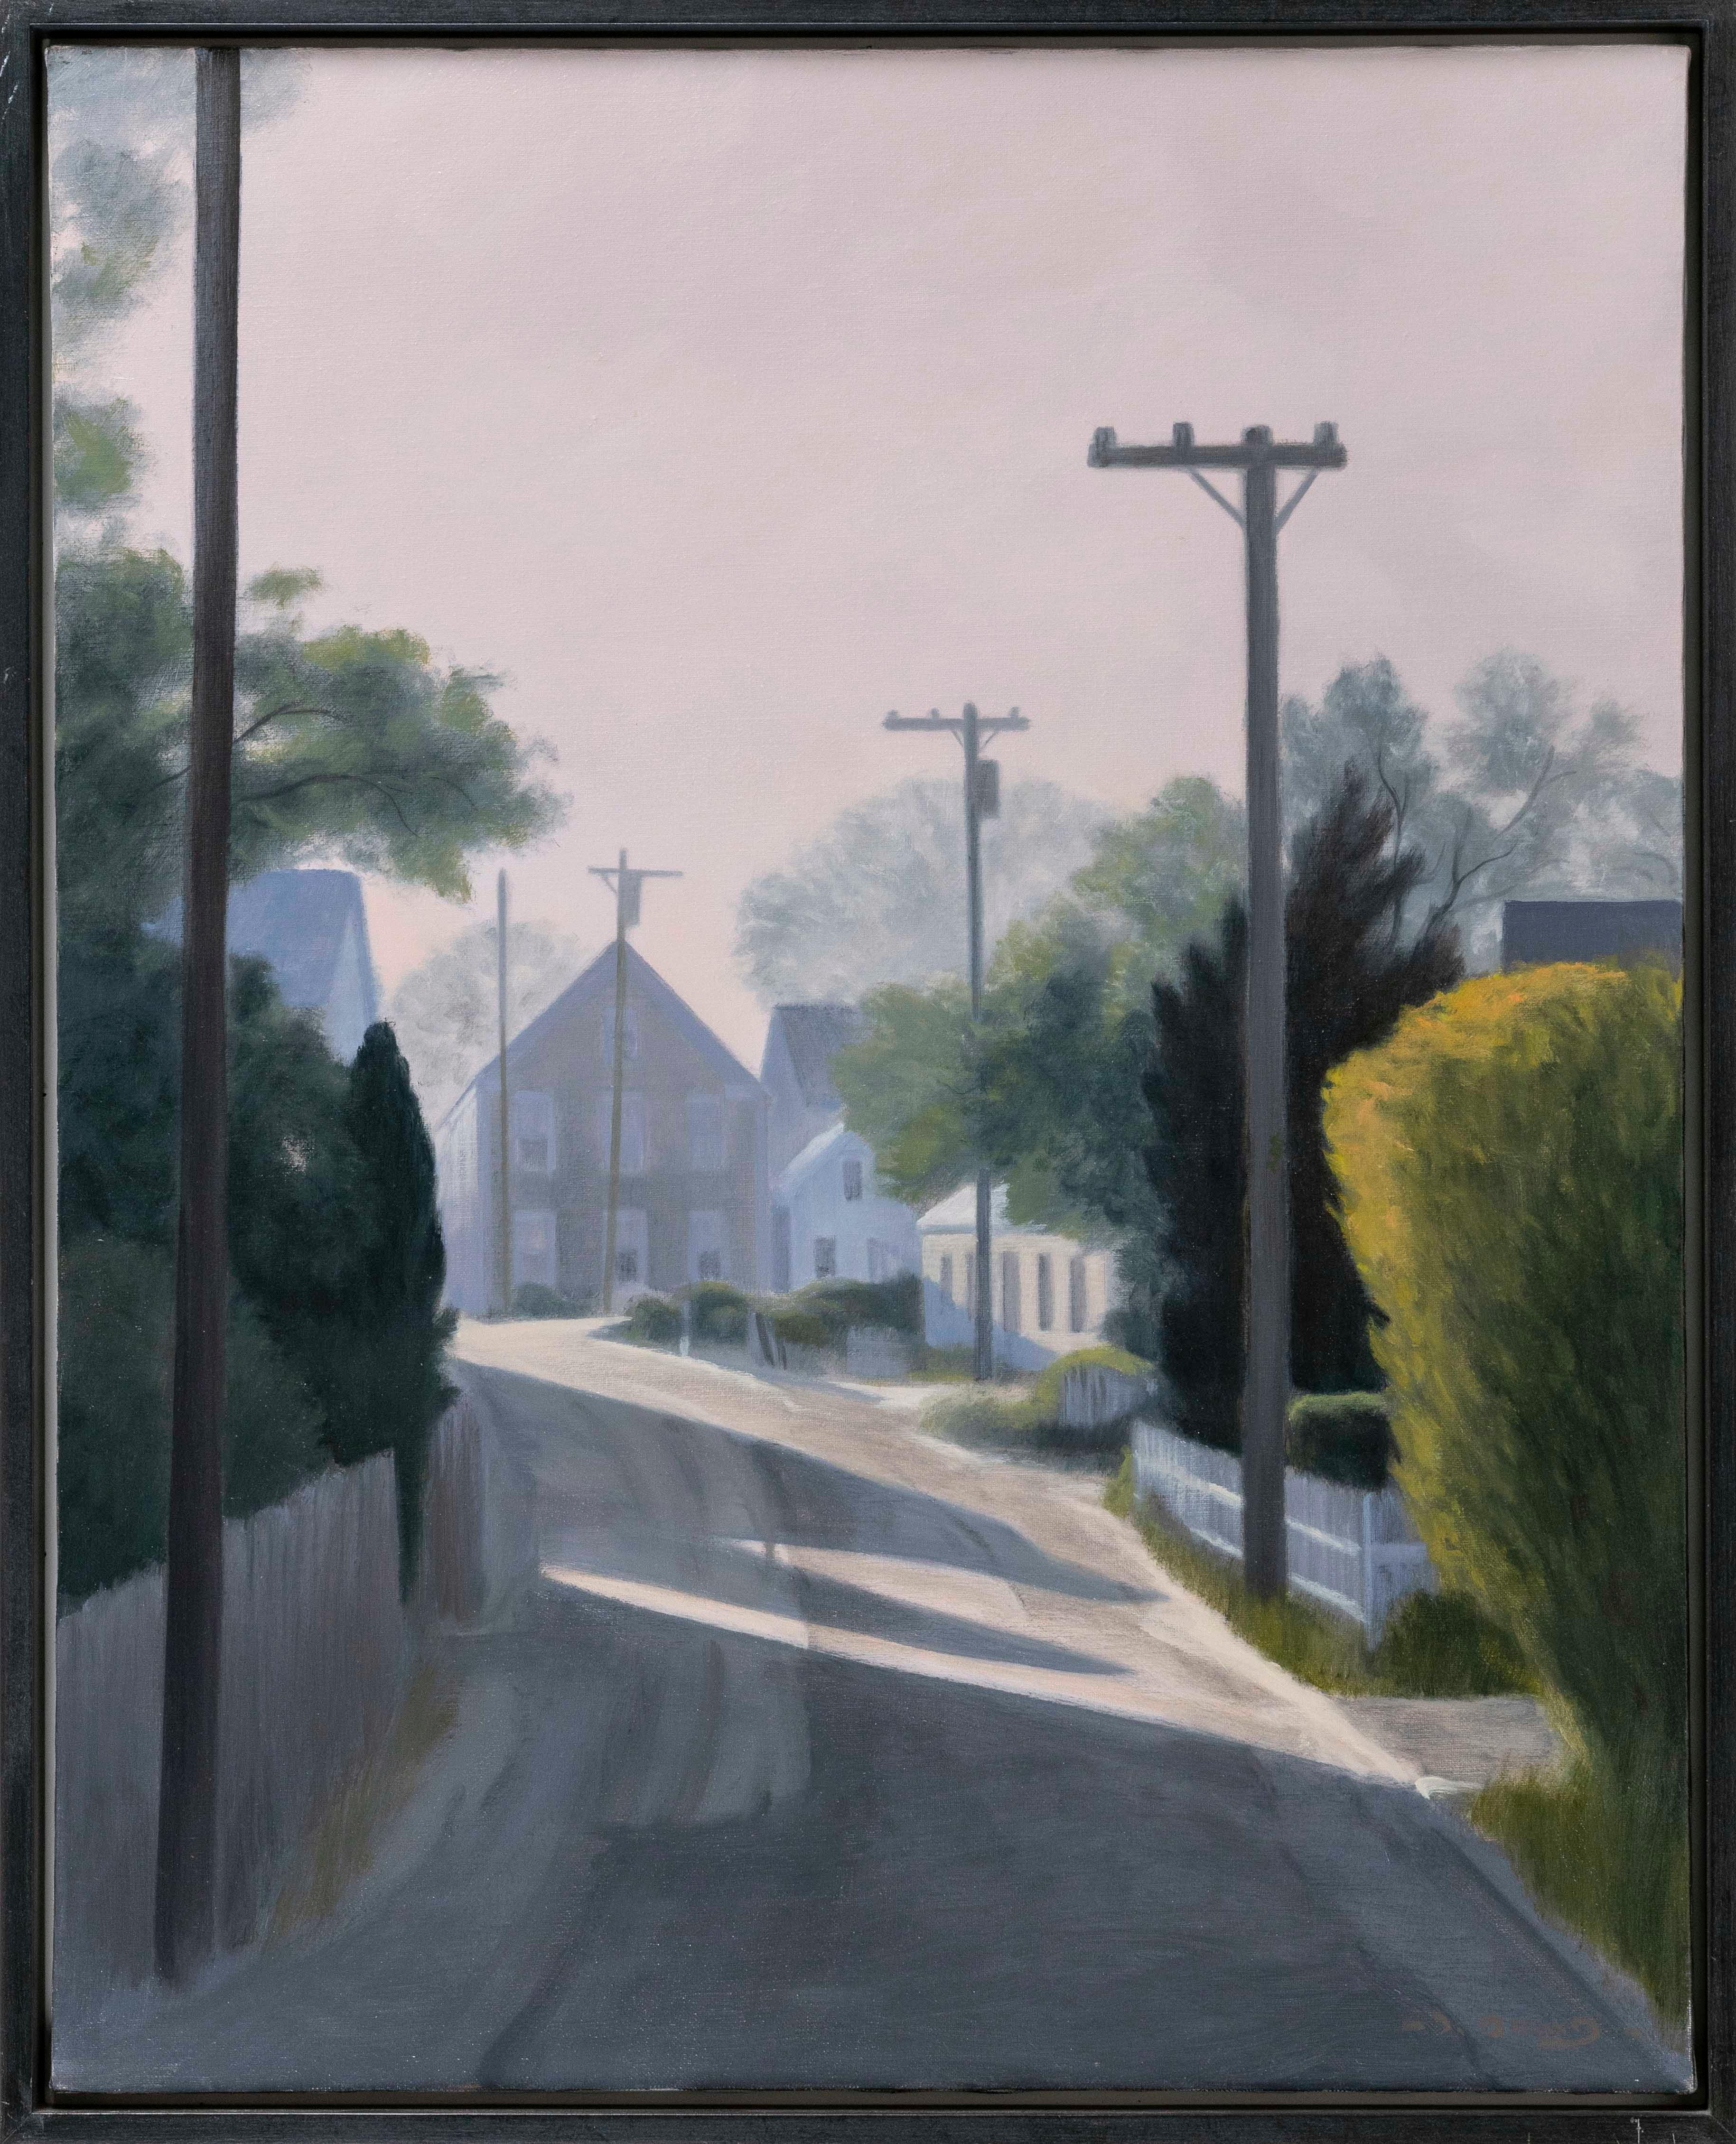 "JOHN DOWD, Massachusetts, b. 1960, Shadows on Commerical Street, Provincetown., Oil on canvas, 30"" x 24"". Framed 31.5"" x 25.5""."